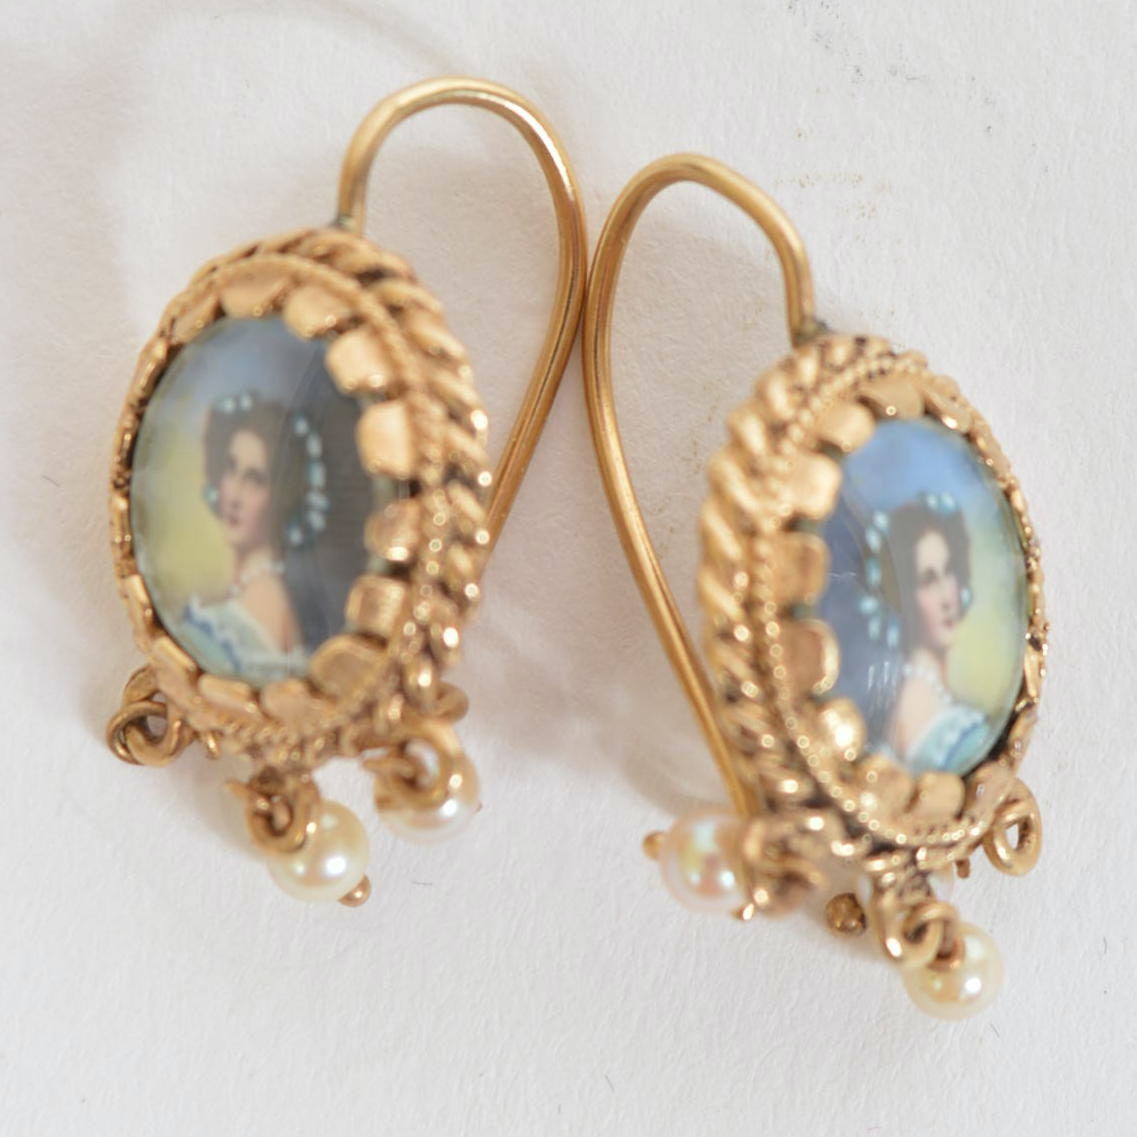 14K Yellow Gold Earrings with Portraits on Porcelain